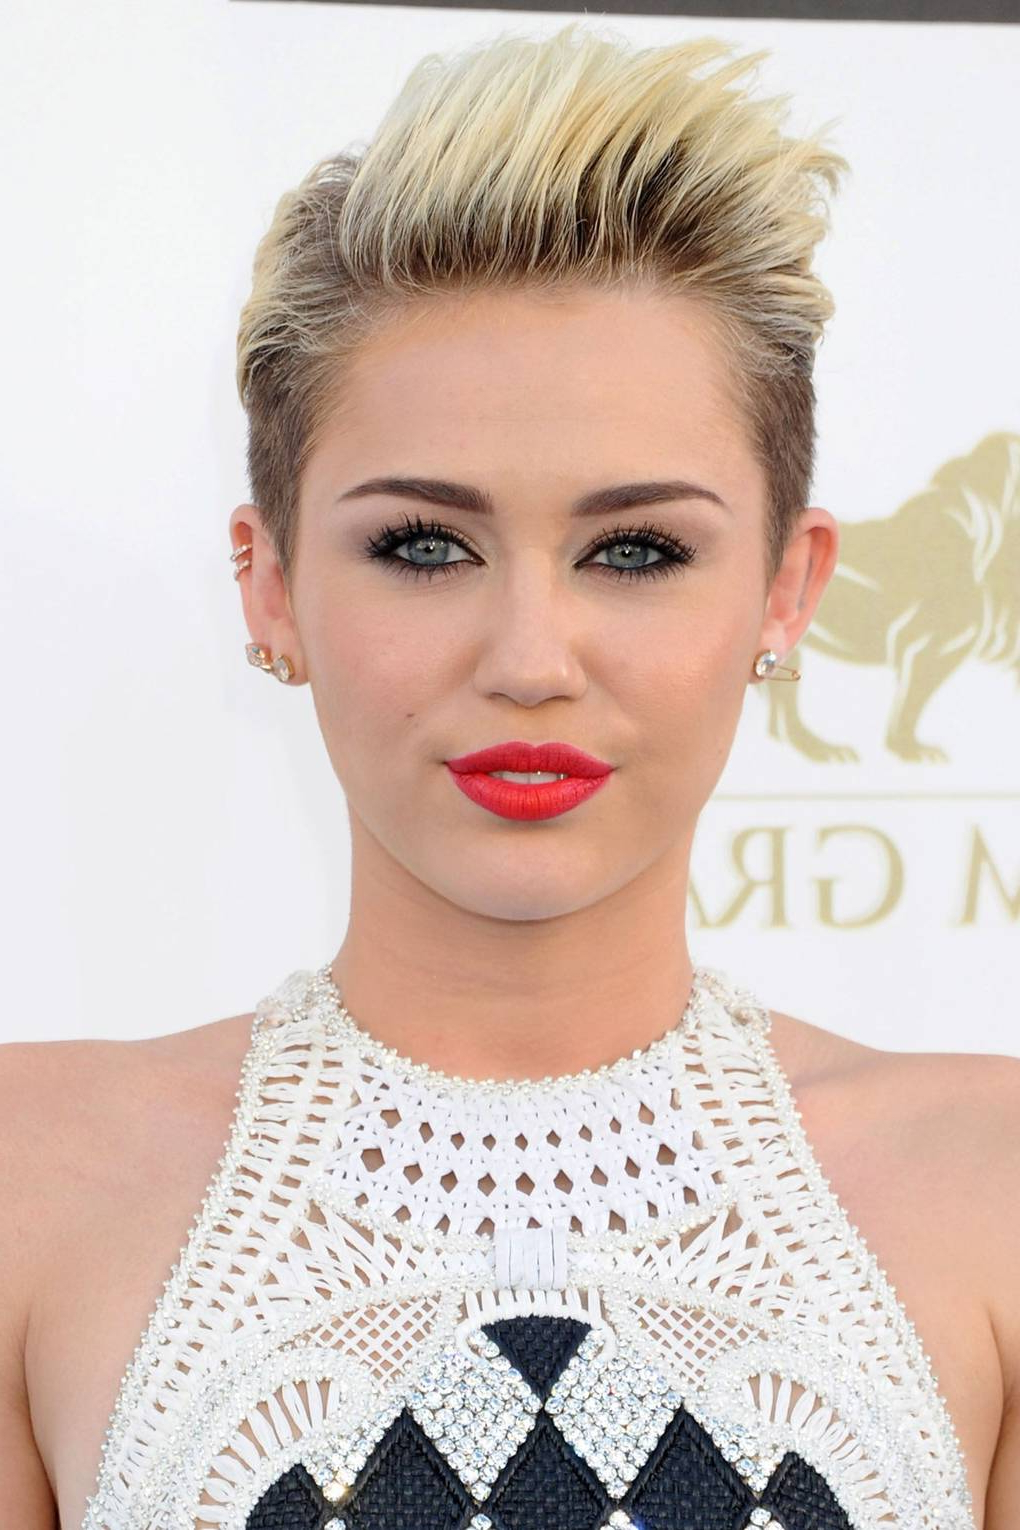 Miley Cyrus Hairstyles – Best Hair, Makeup & Beauty Looks | Glamour Uk Throughout Miley Cyrus Short Hairstyles (View 3 of 25)